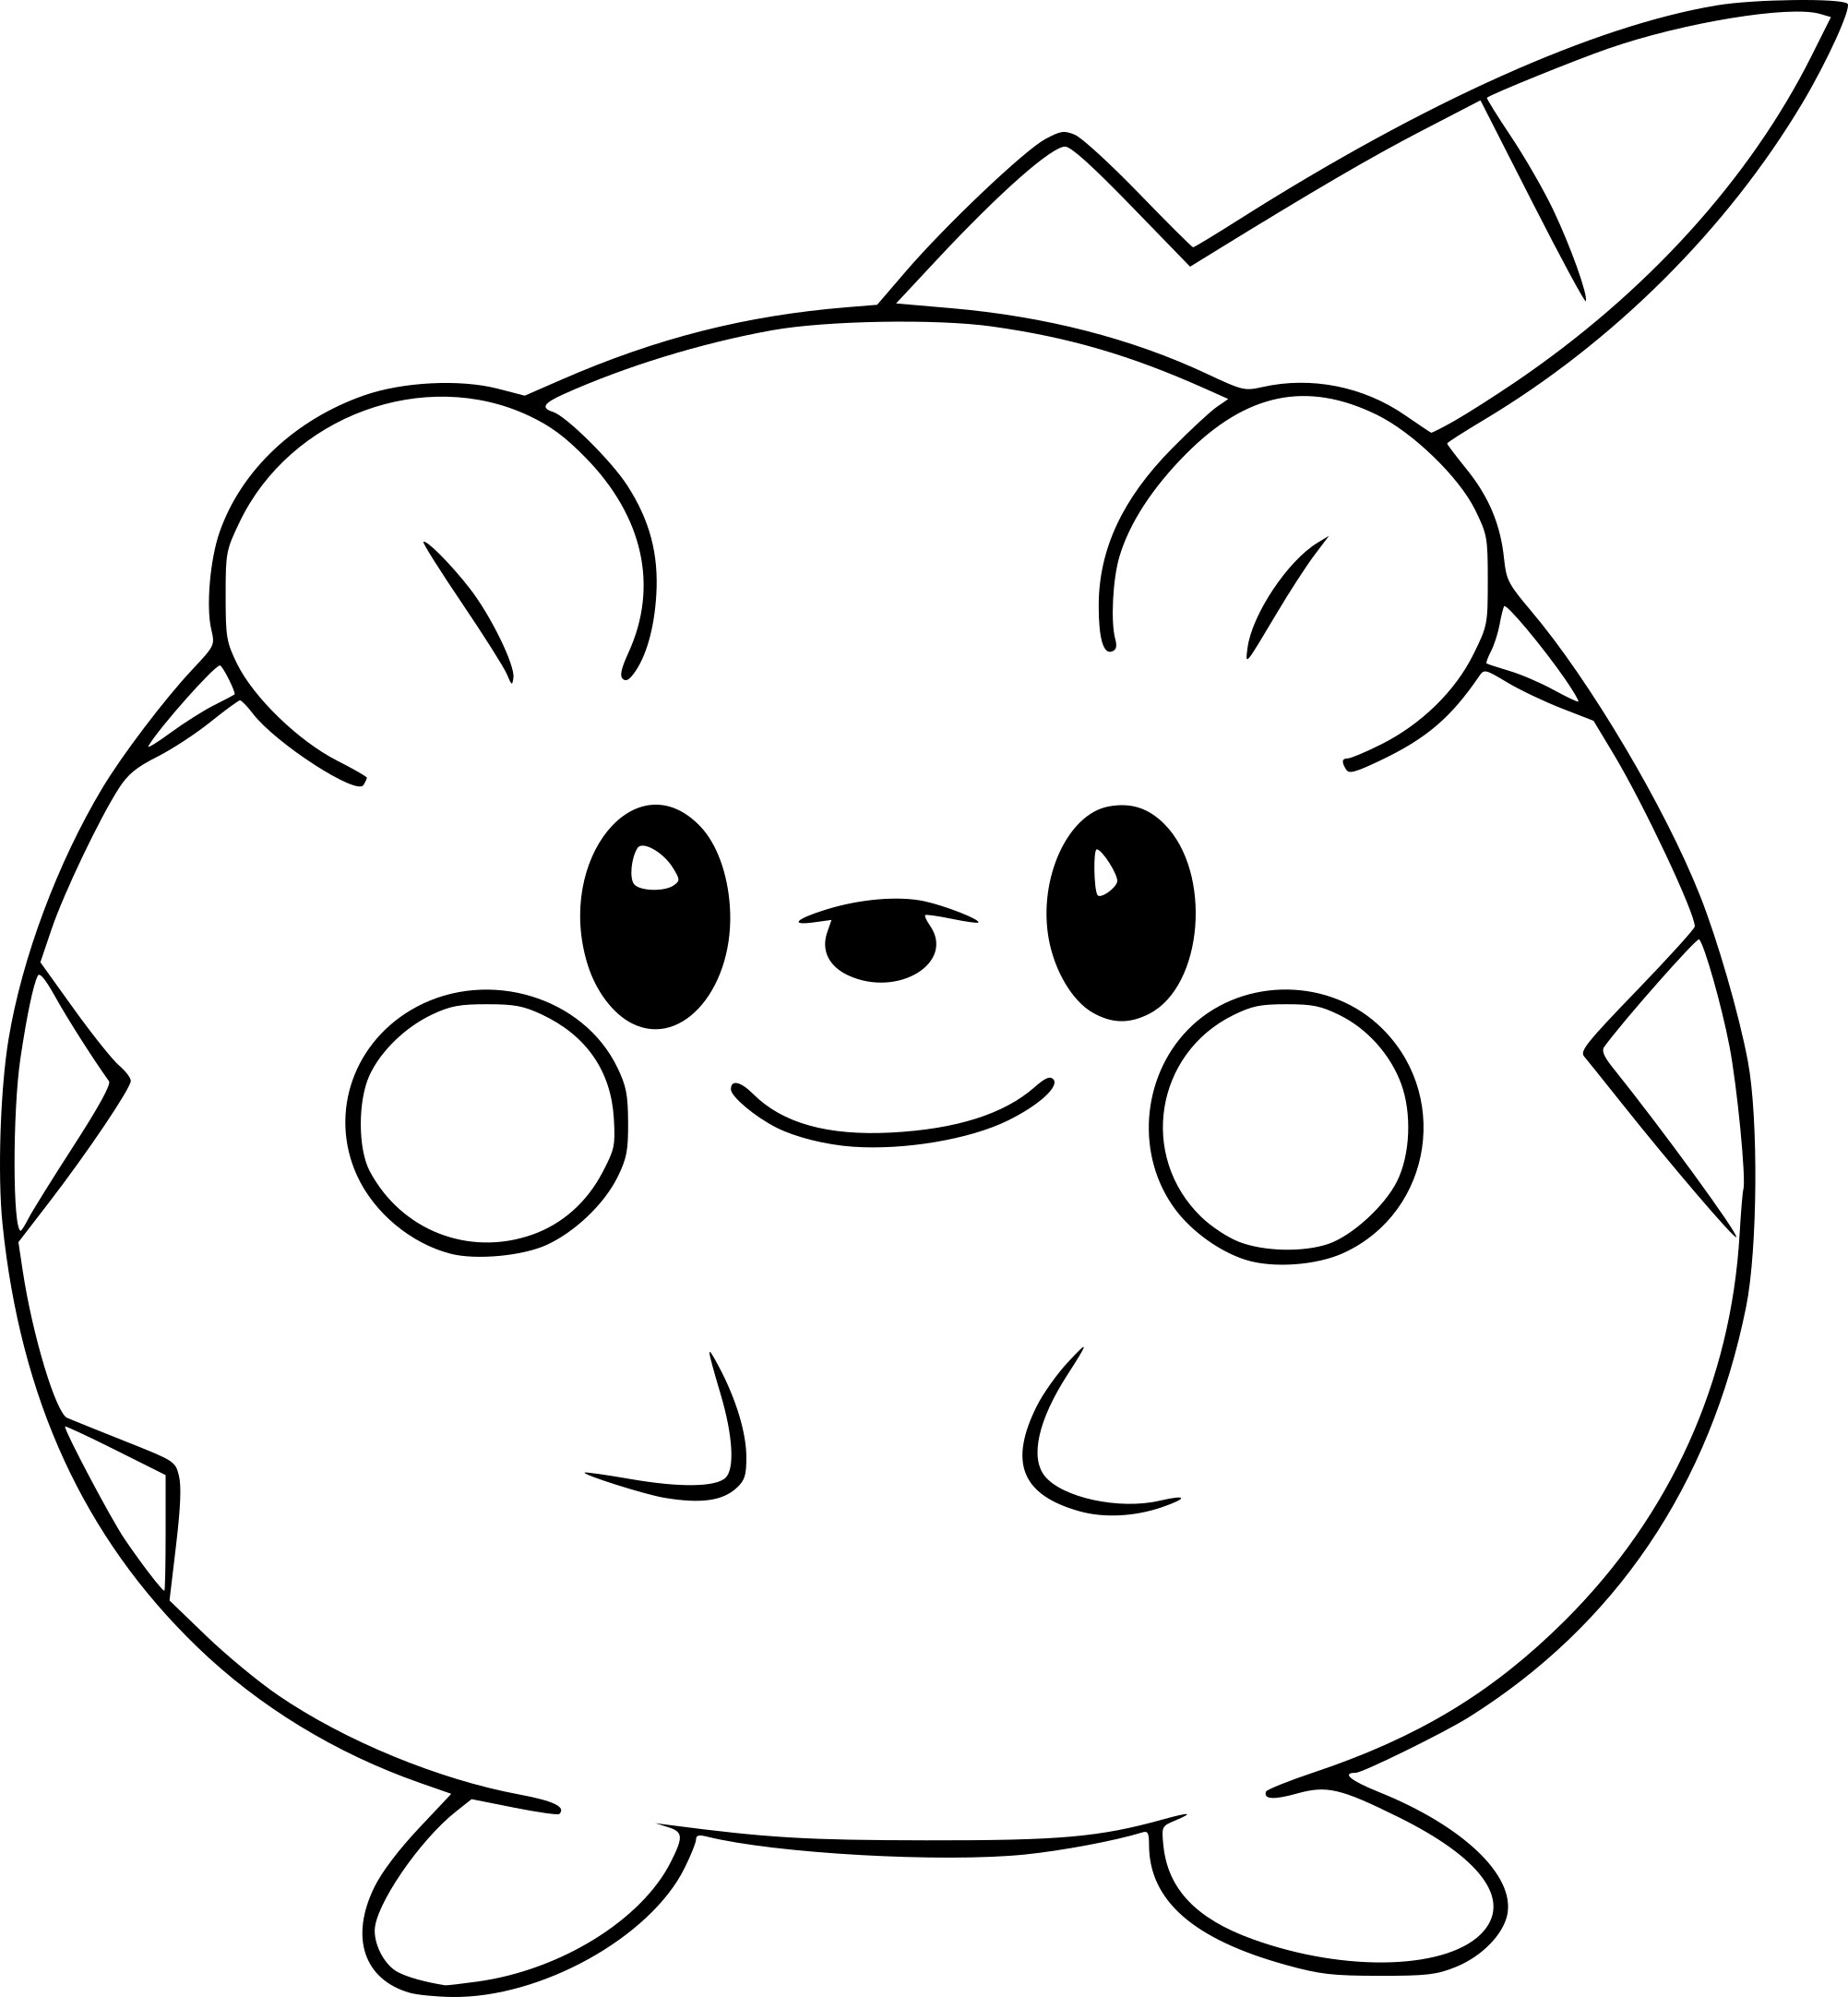 Coloriage Togedemaru Pokemon A Imprimer